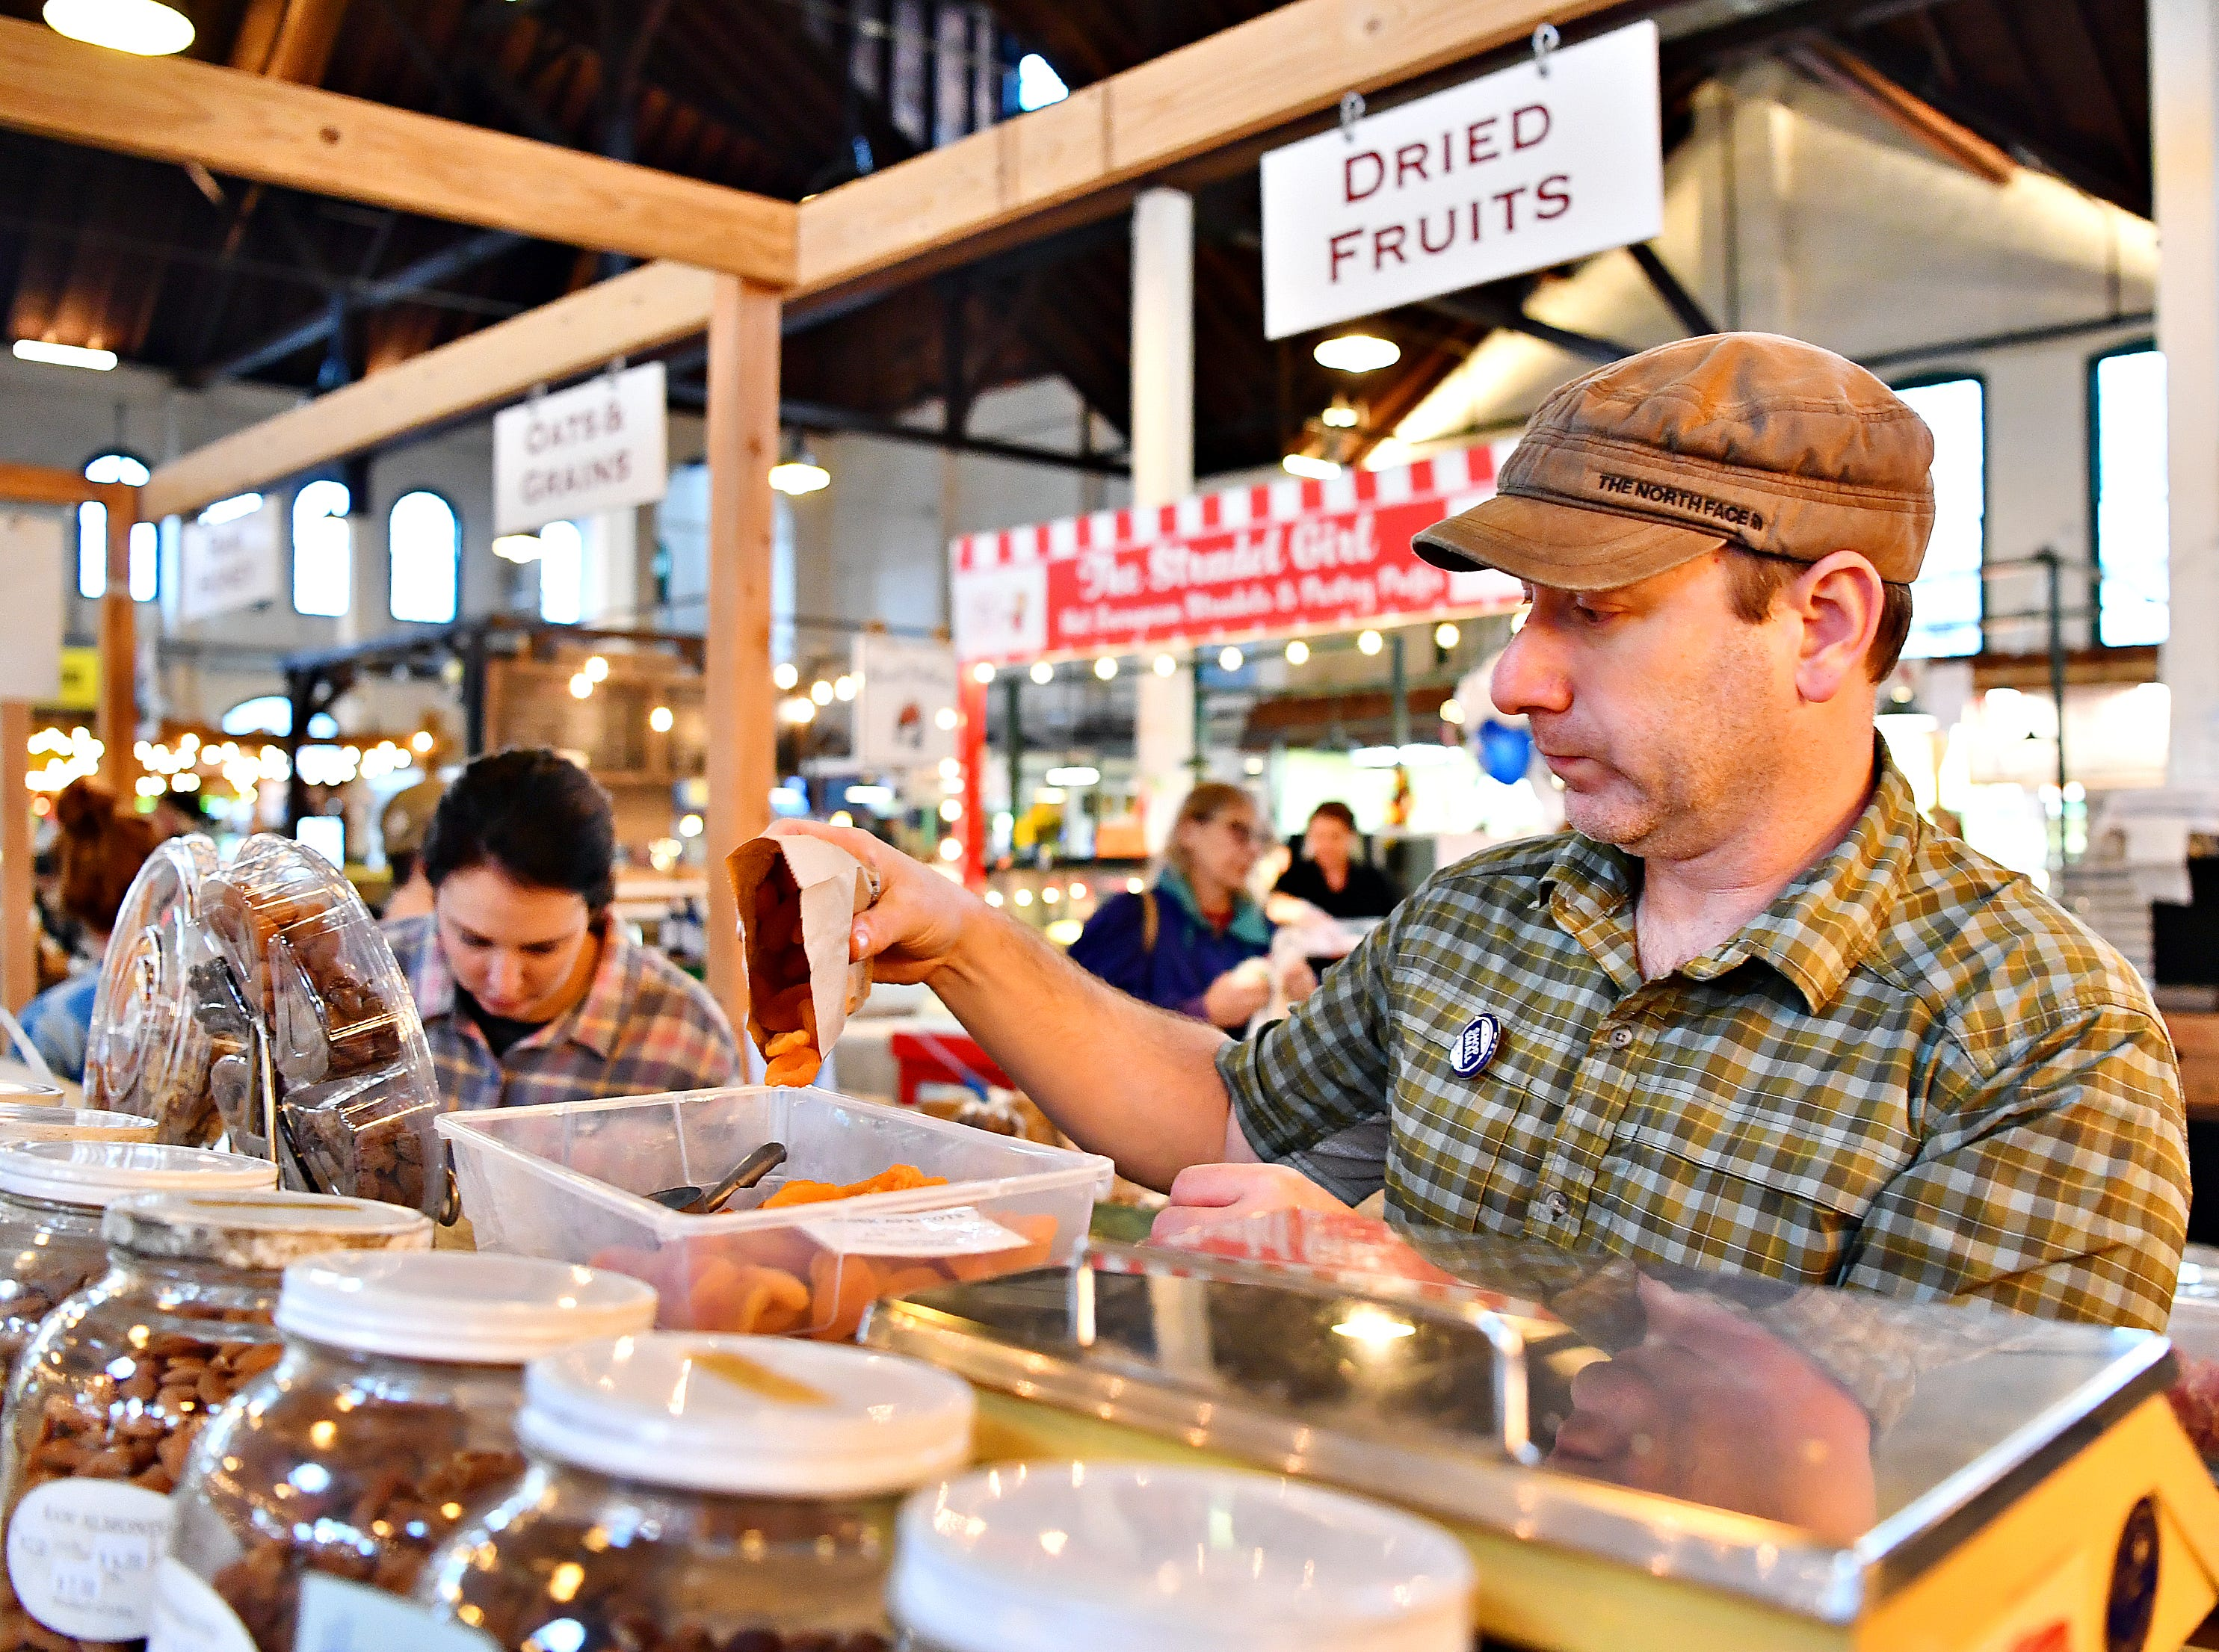 Owner Kevin Westover, of ComplEAT, prepares to weigh Turkish apricots to fill an order during Small Business Saturday at Central Market in York City, Saturday, Nov. 24, 2018. Dawn J. Sagert photo